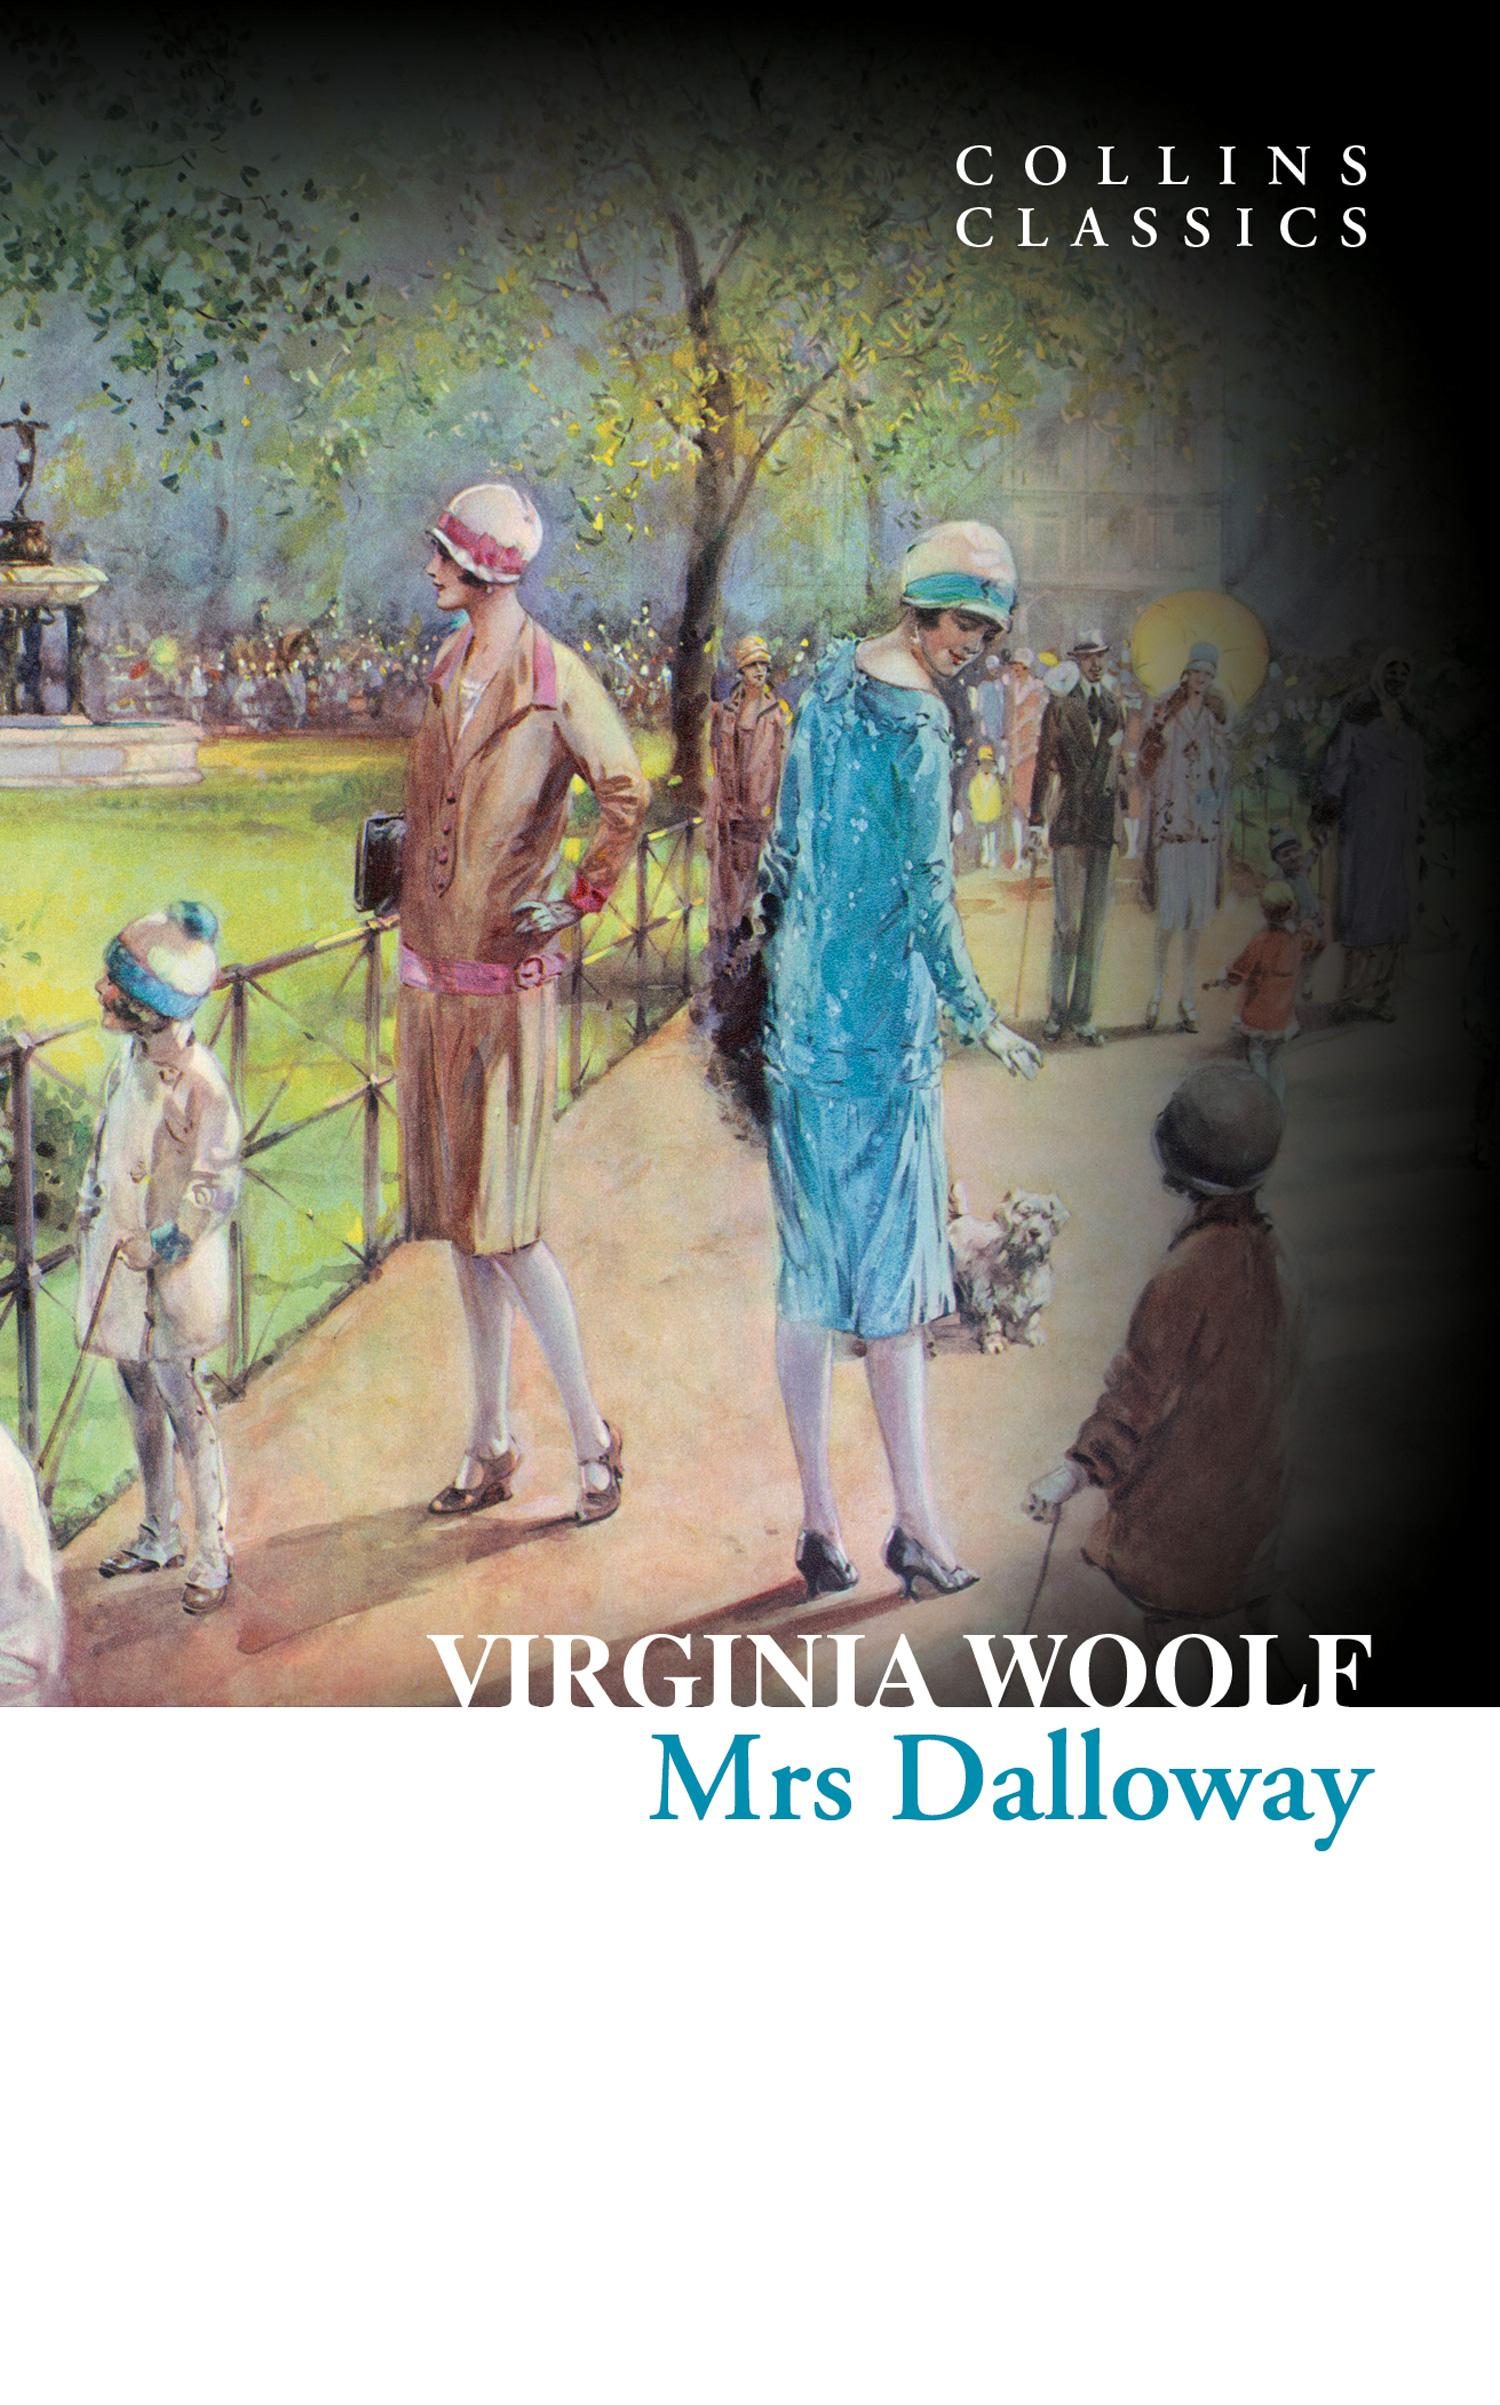 a focus on clarissa and septimus in virginia woolfs book mrs dalloway The author of this 20th century's work was virginia woolf download mrs dalloway pdf book  but the story mostly centers on clarissa dalloway and septimus smith.